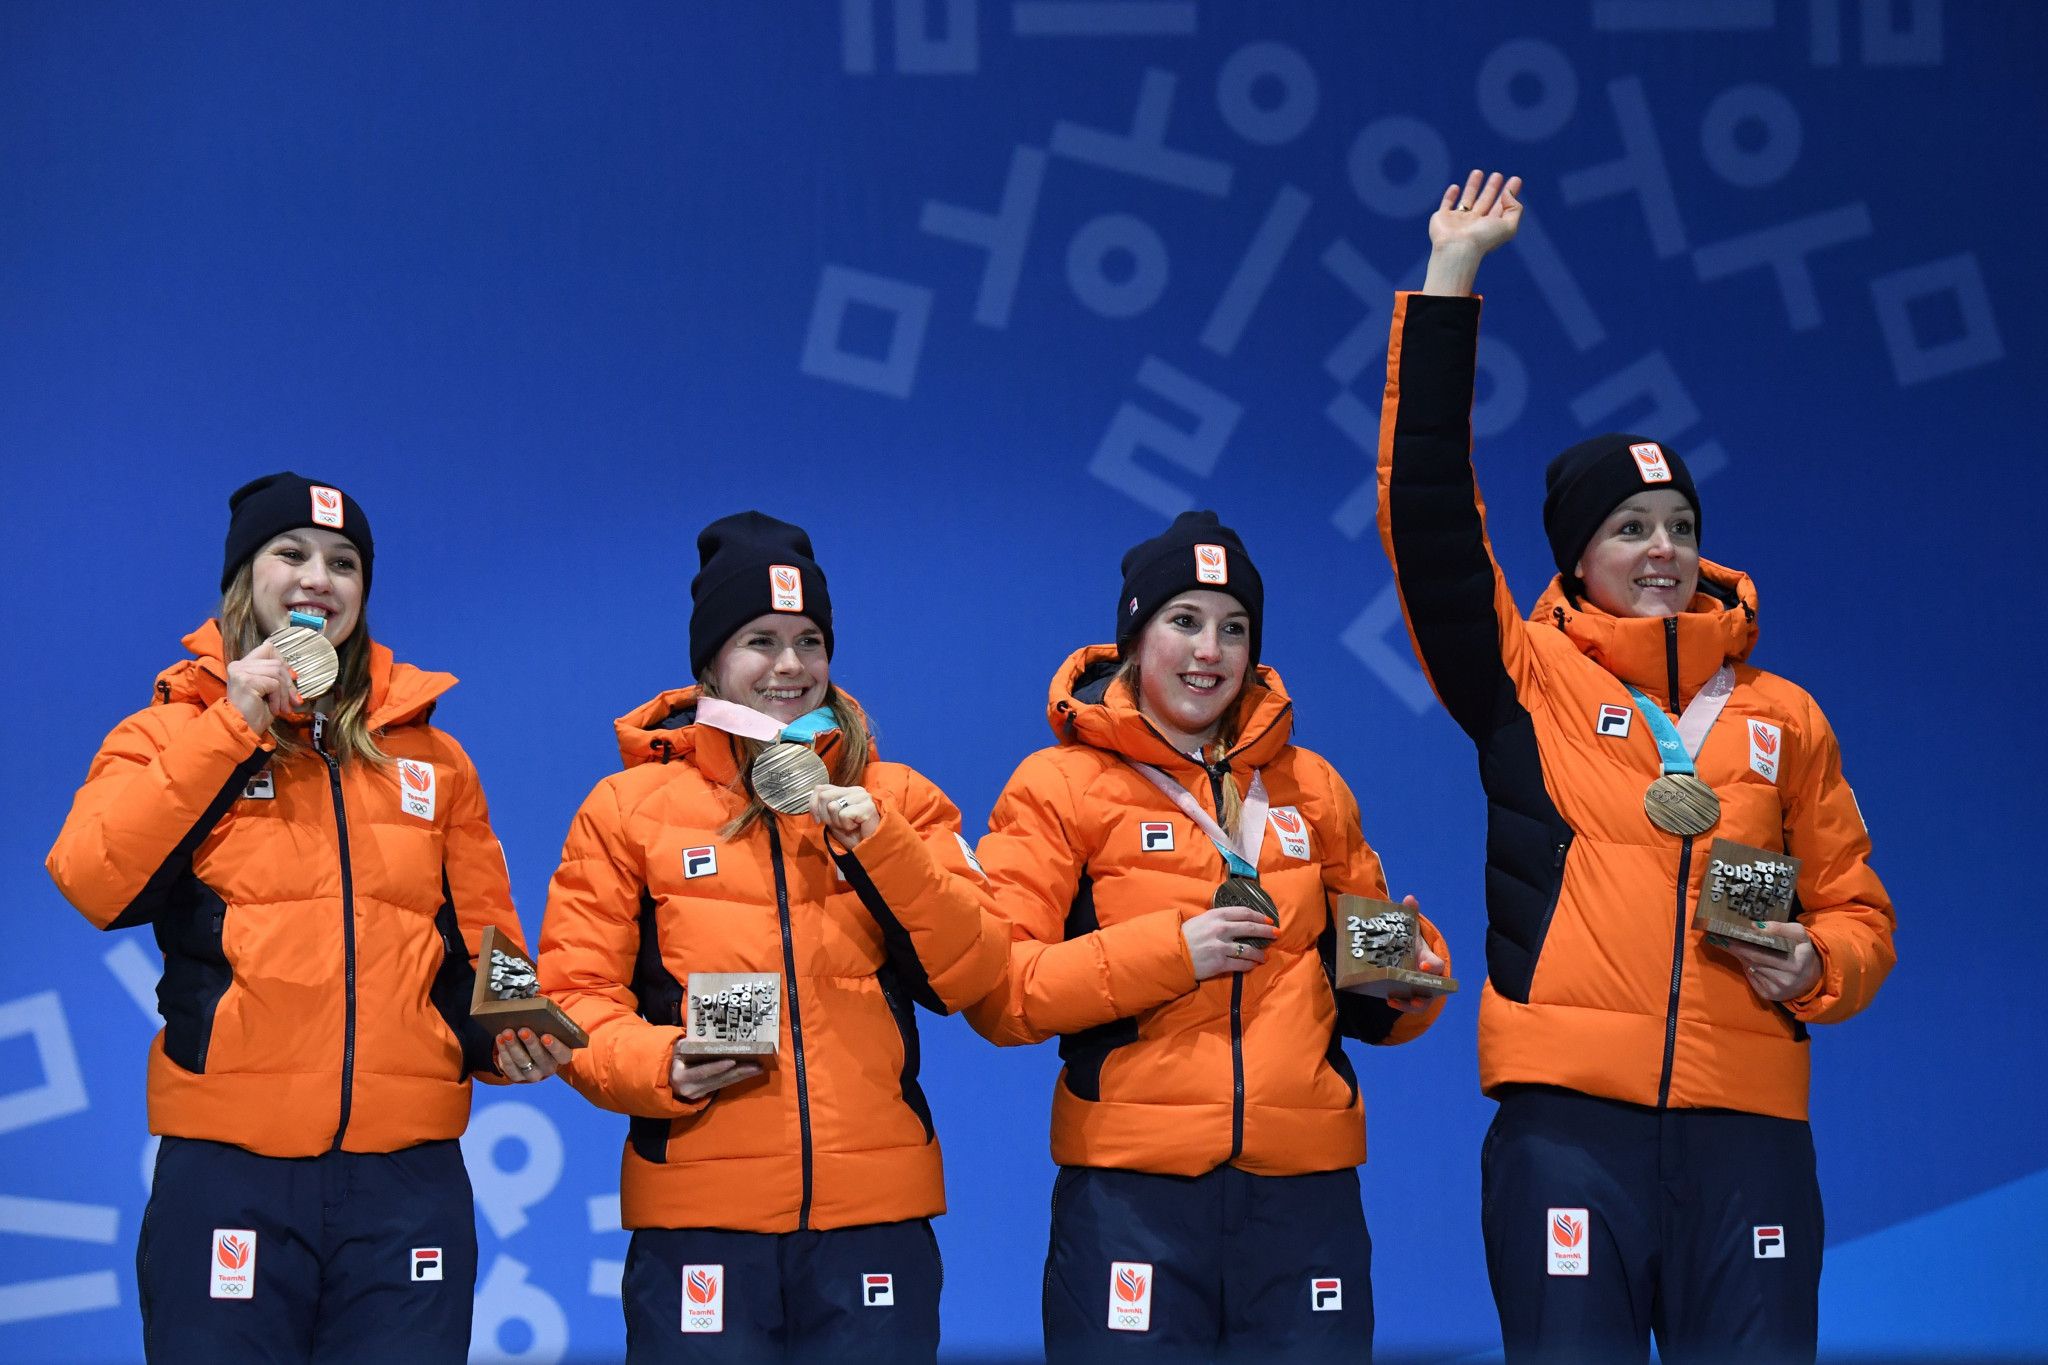 Yara van Kerkhof, second left, won two medals at Pyeongchang 2018 ©Getty Images